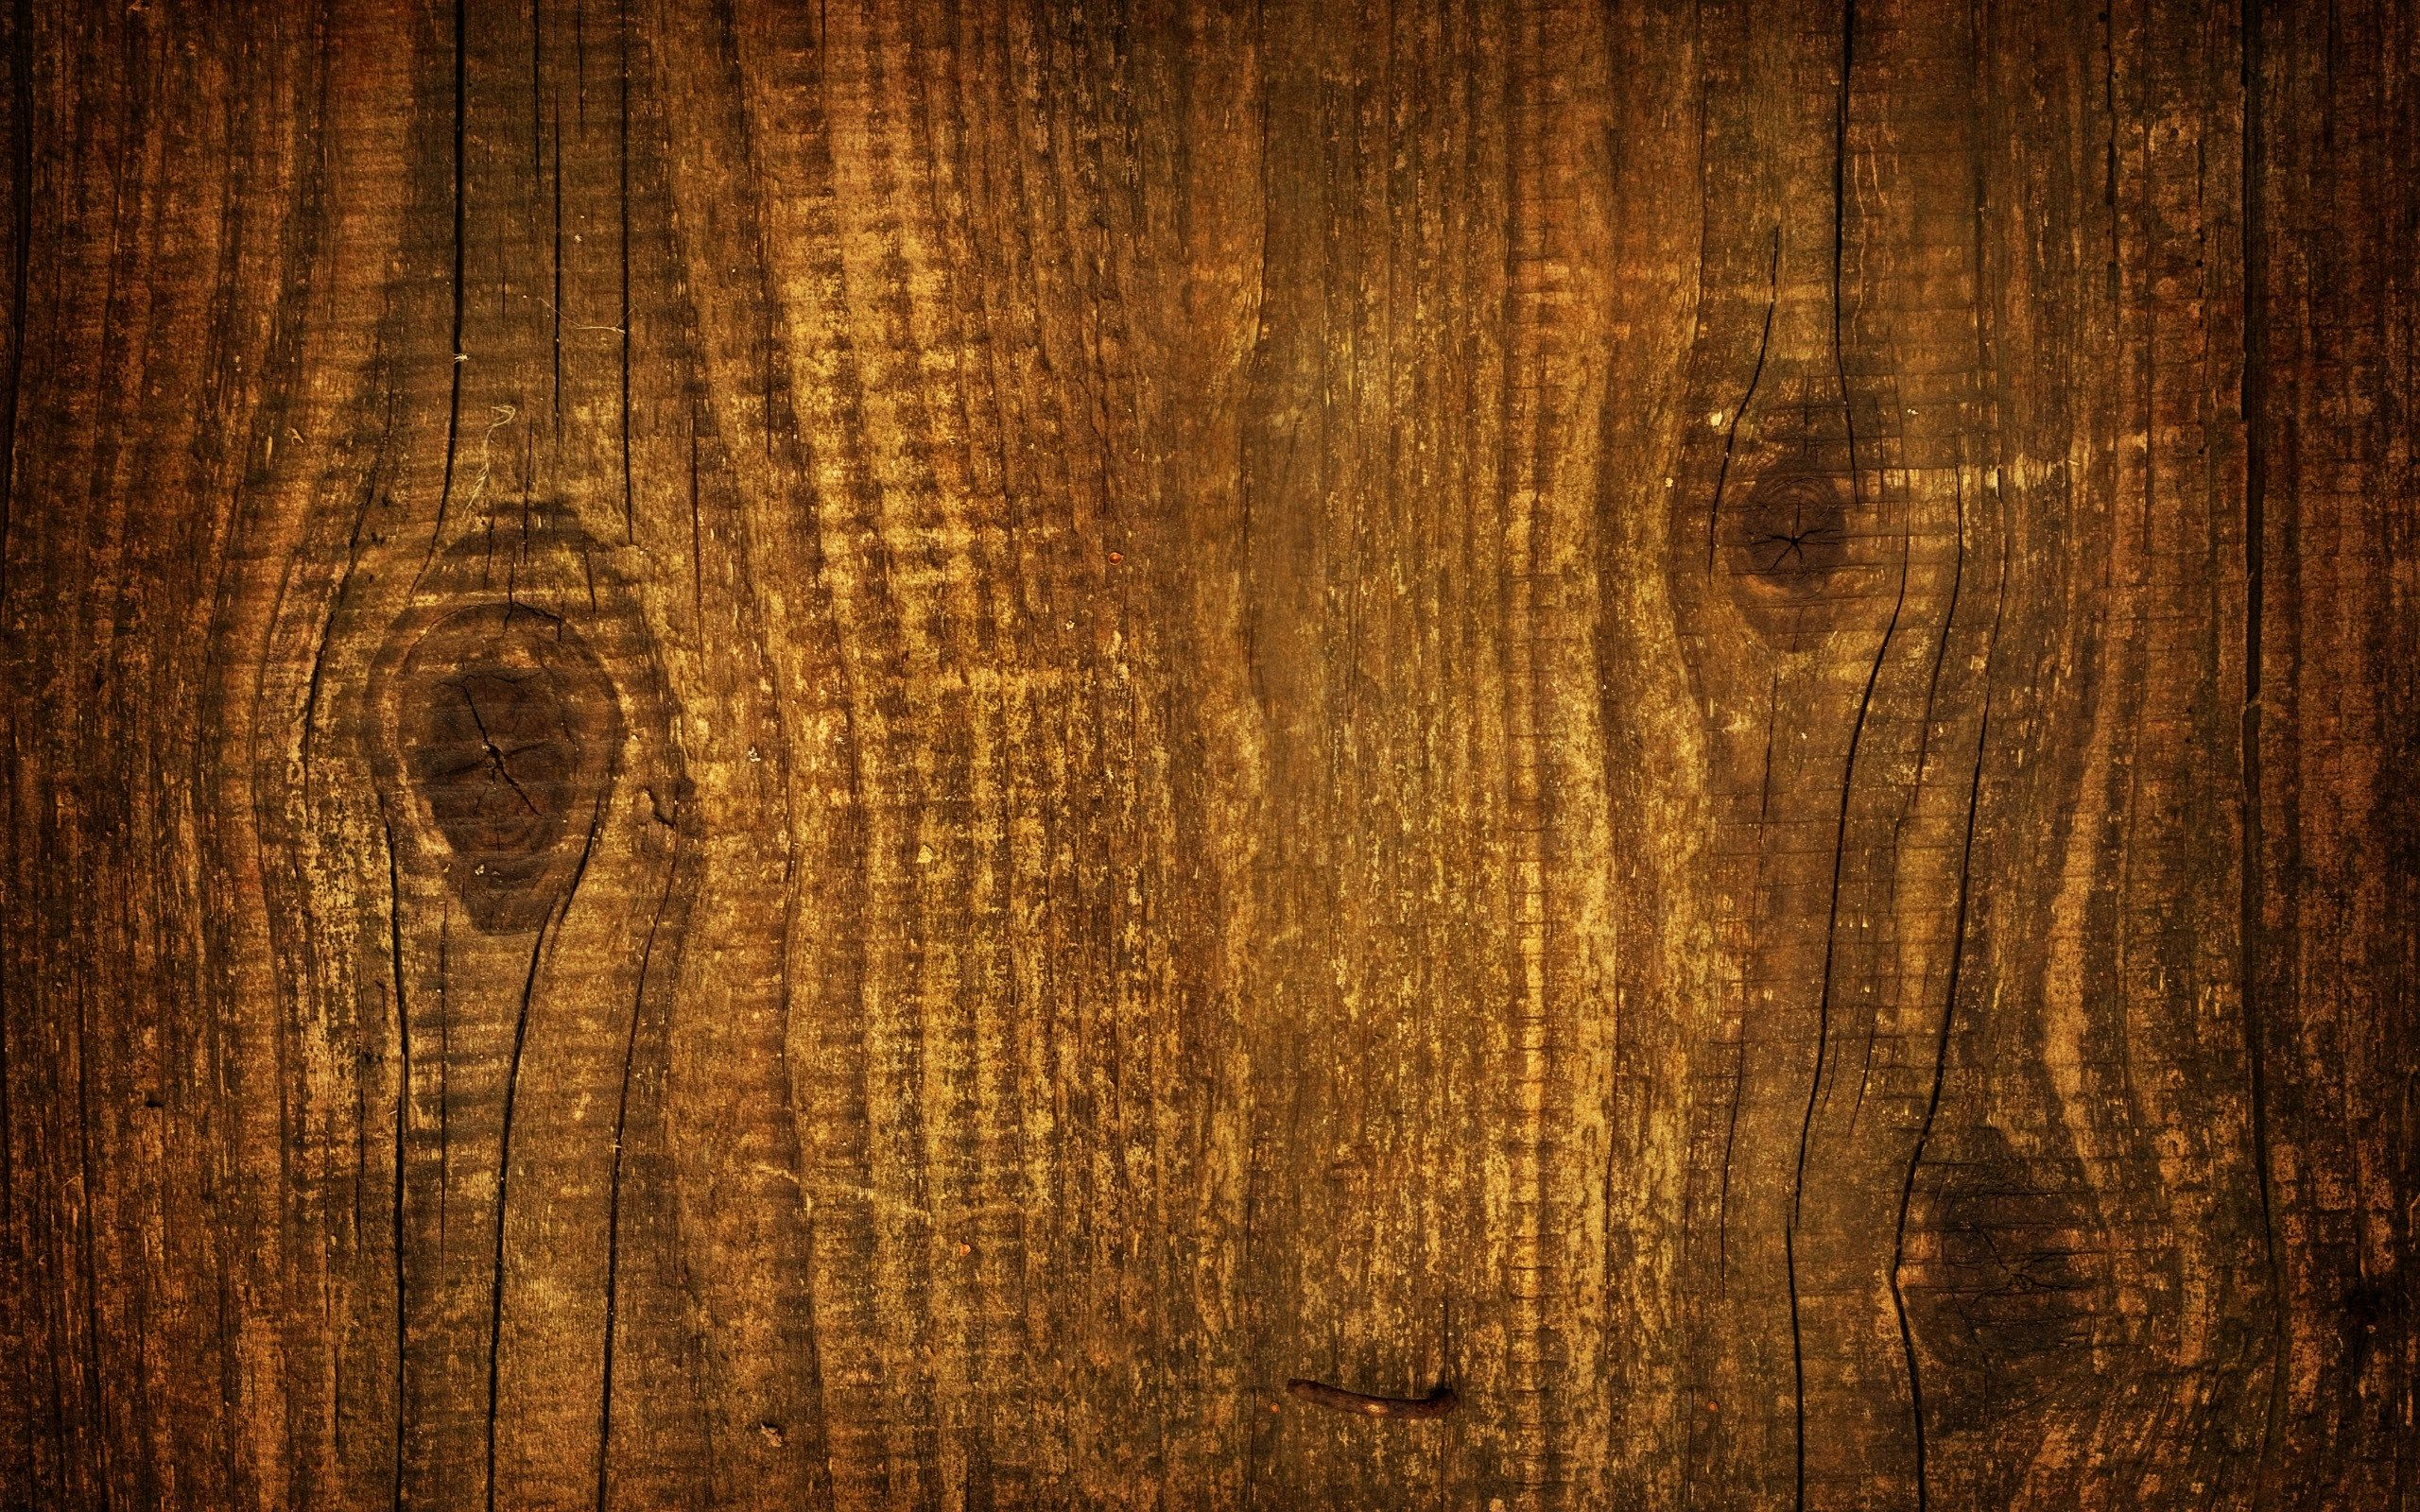 Hq Definition Wallpaper Desktop Wood Picture 2560x1600 1668 Kb